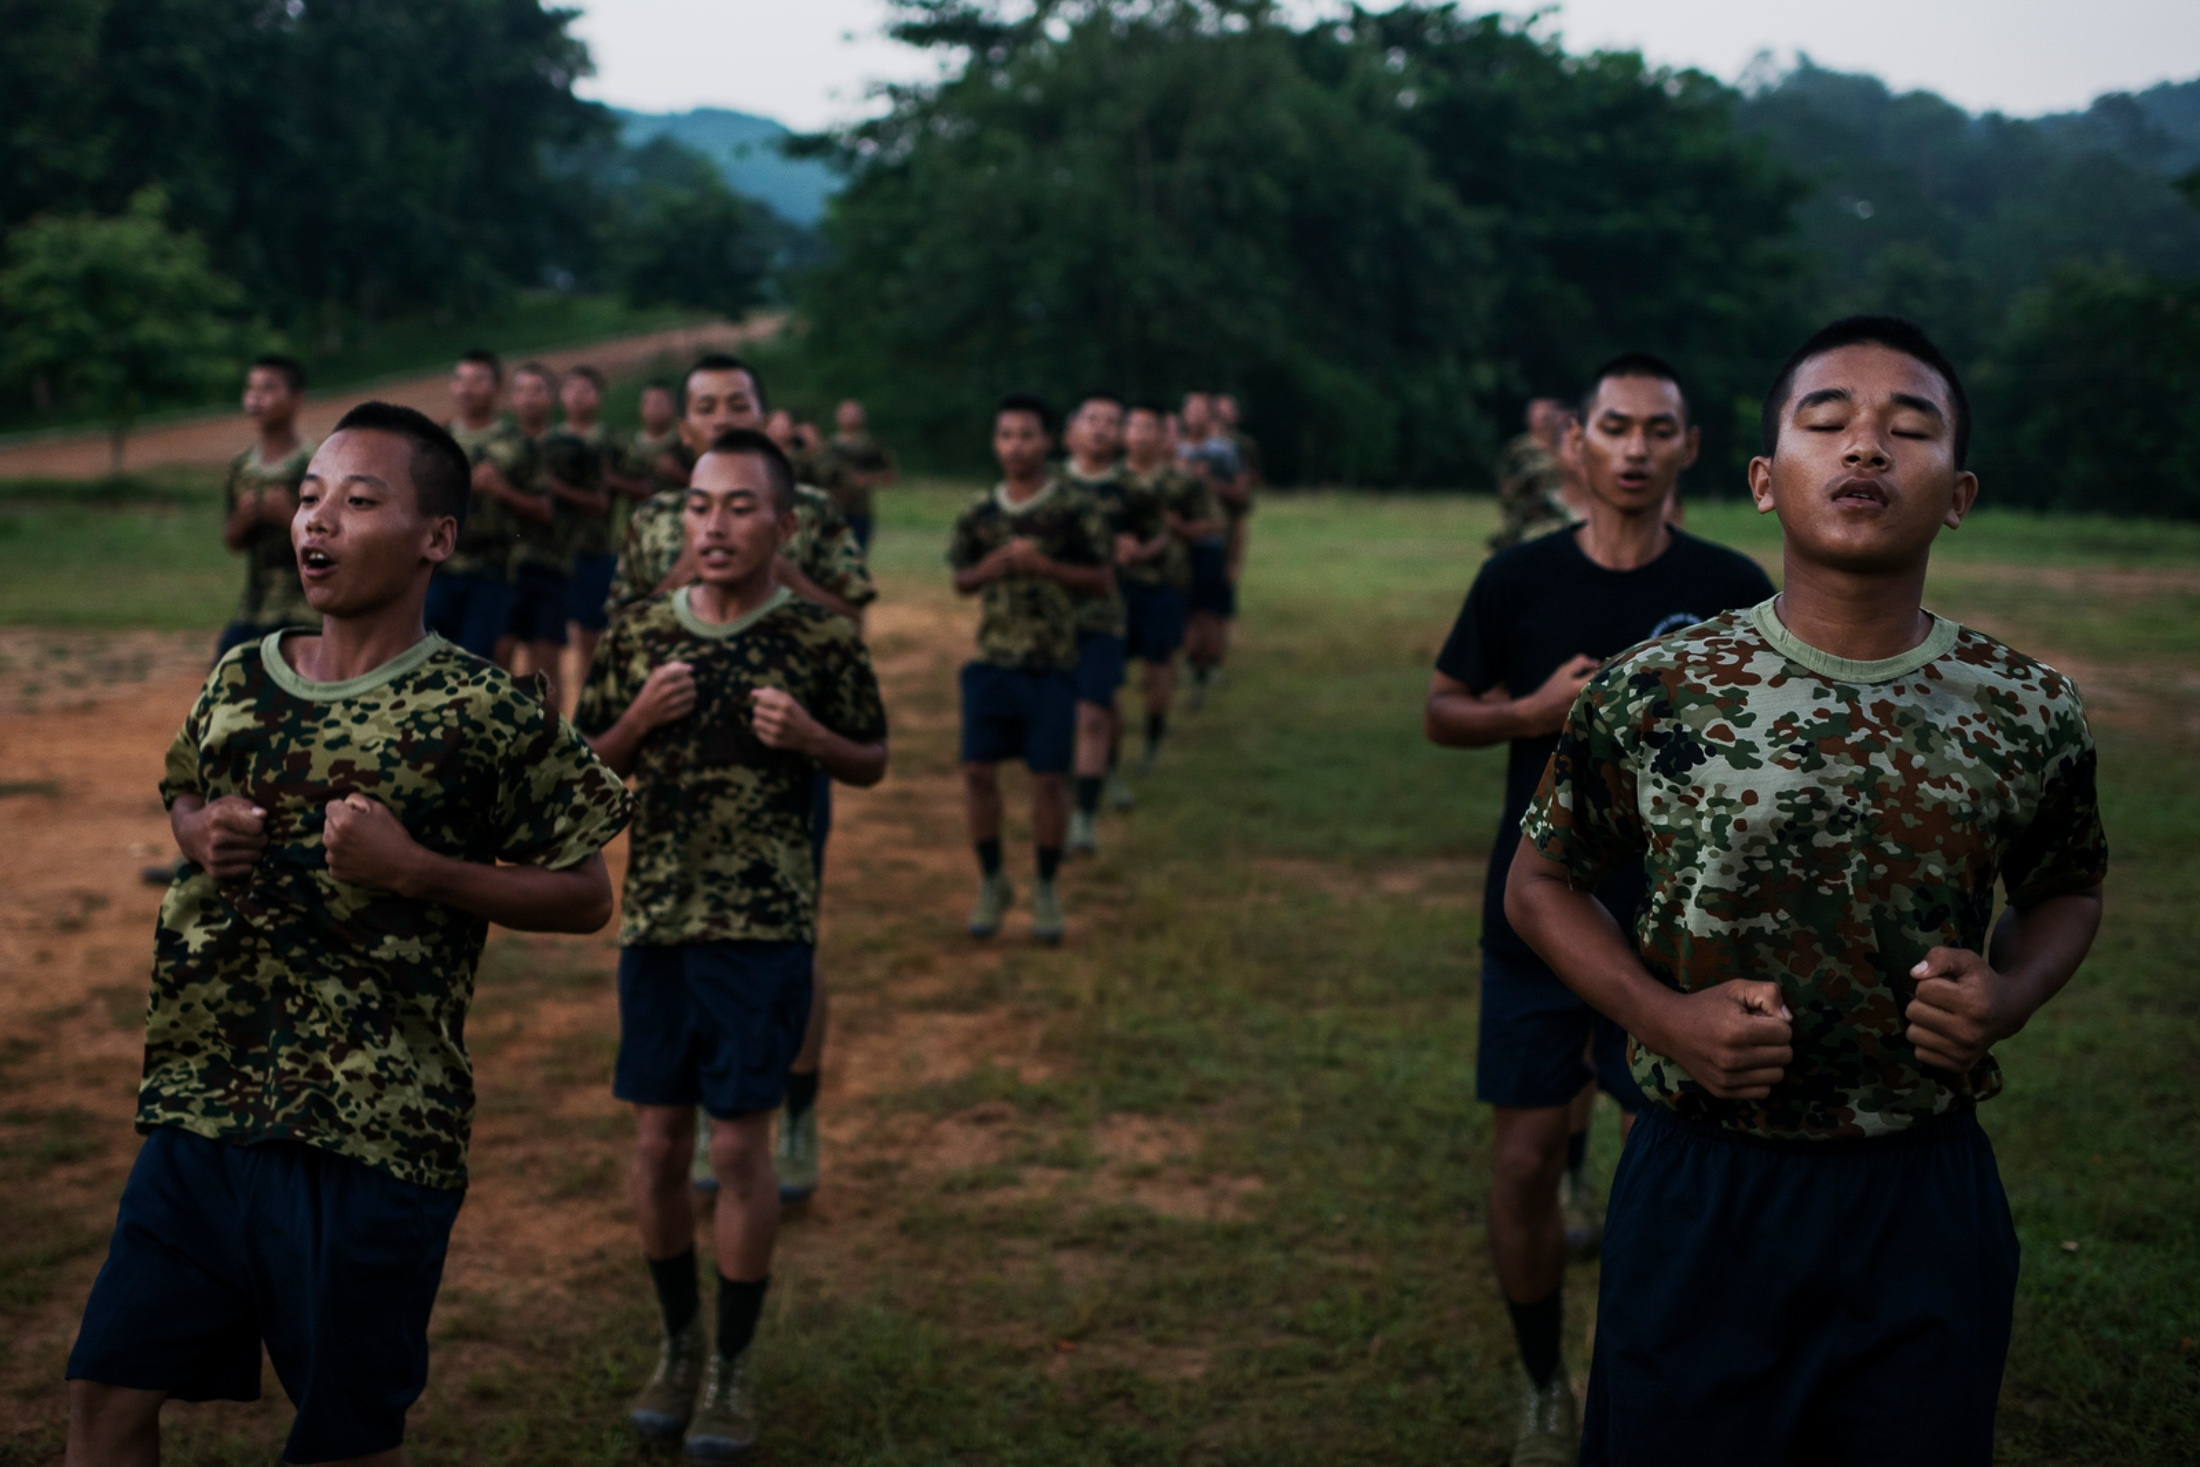 Recruits of the KIA National Service during daily morning exercise in Laiza, the KIA headquarters in Kachin State, Myanmar.